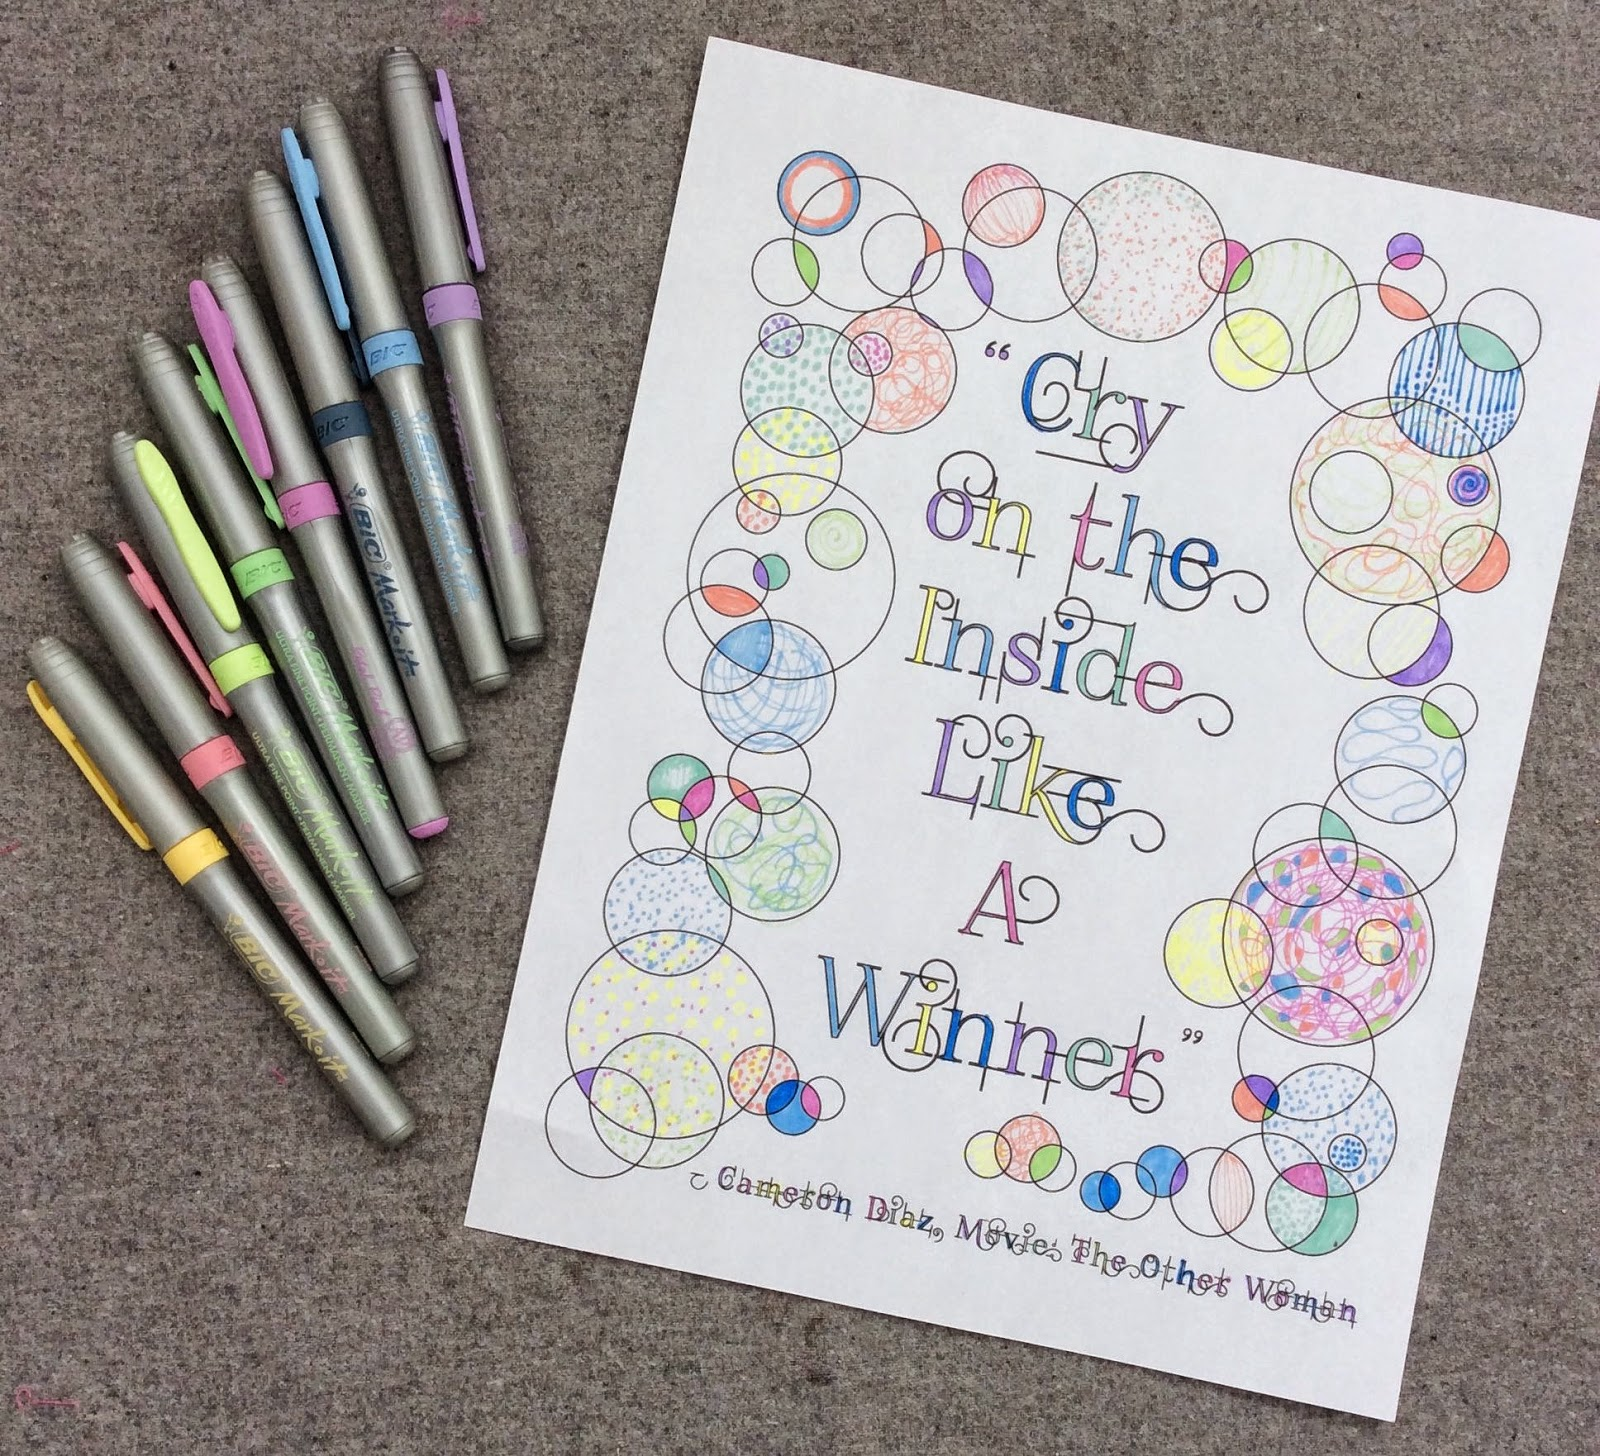 cry on the inside, adult coloring page, stefanie girard, quote, lettering type, bubbles, bic markers